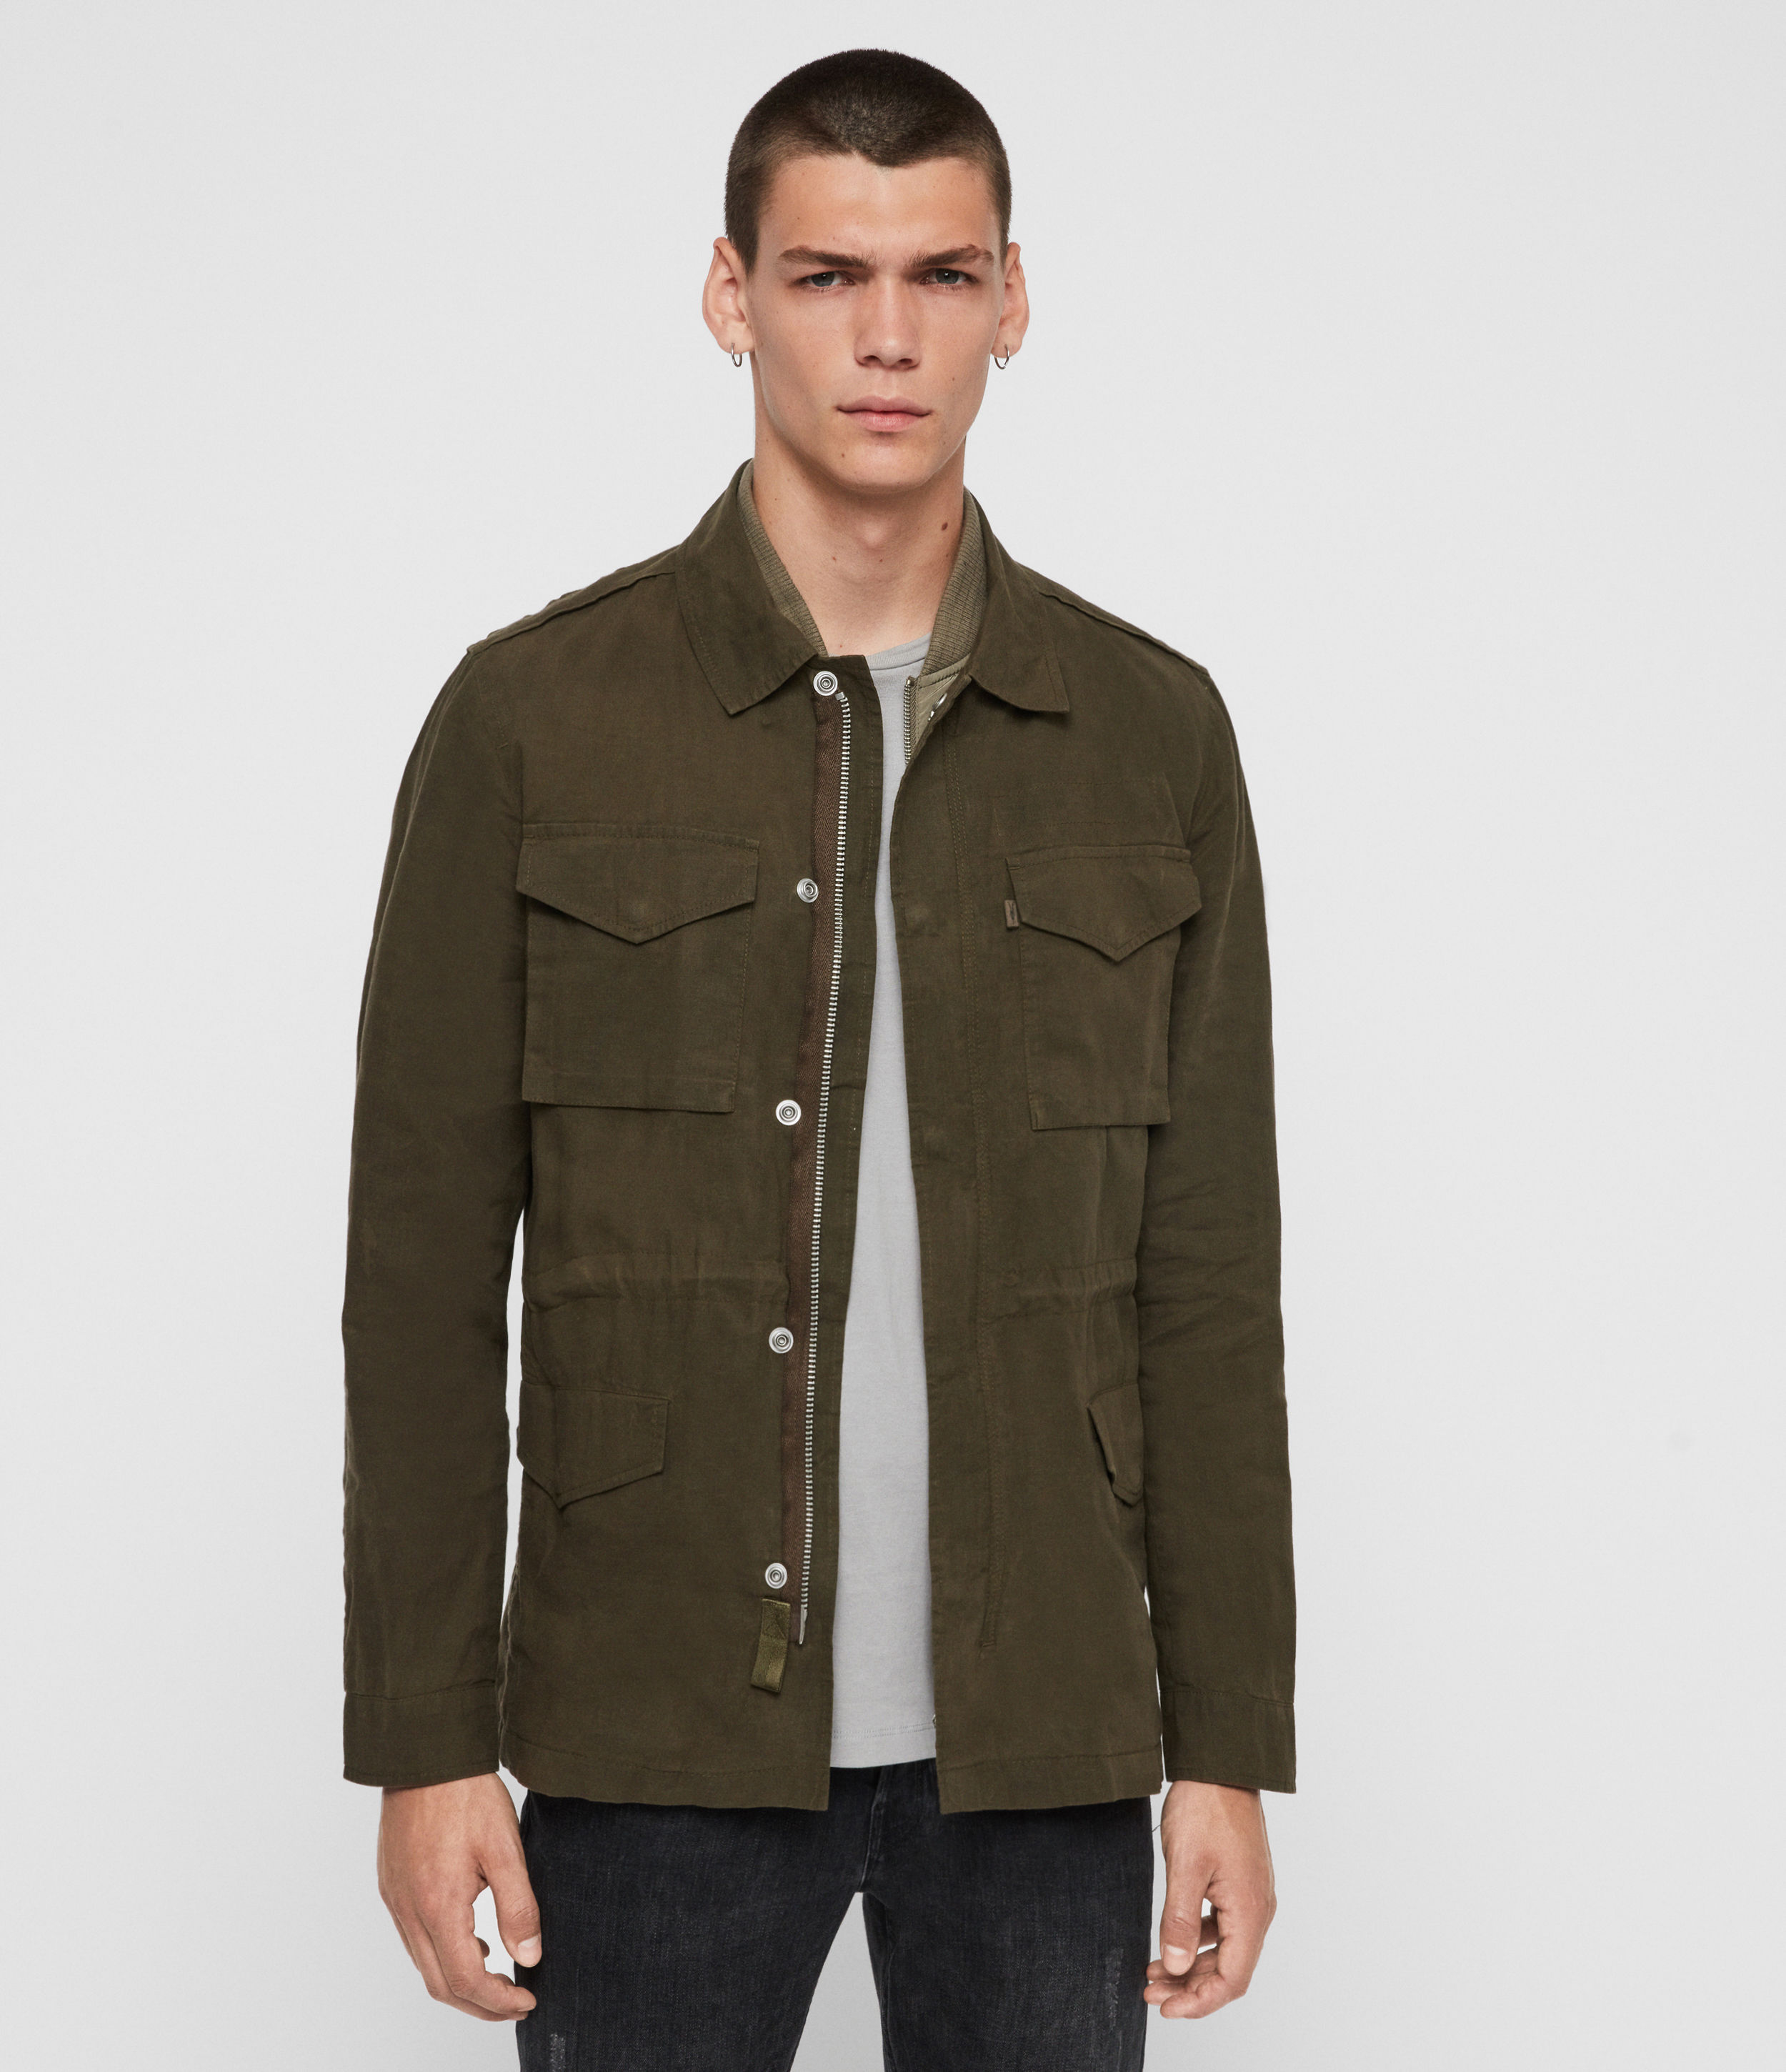 AllSaints Men's Cotton Regular Fit Baynes Jacket, Brown, Size: L